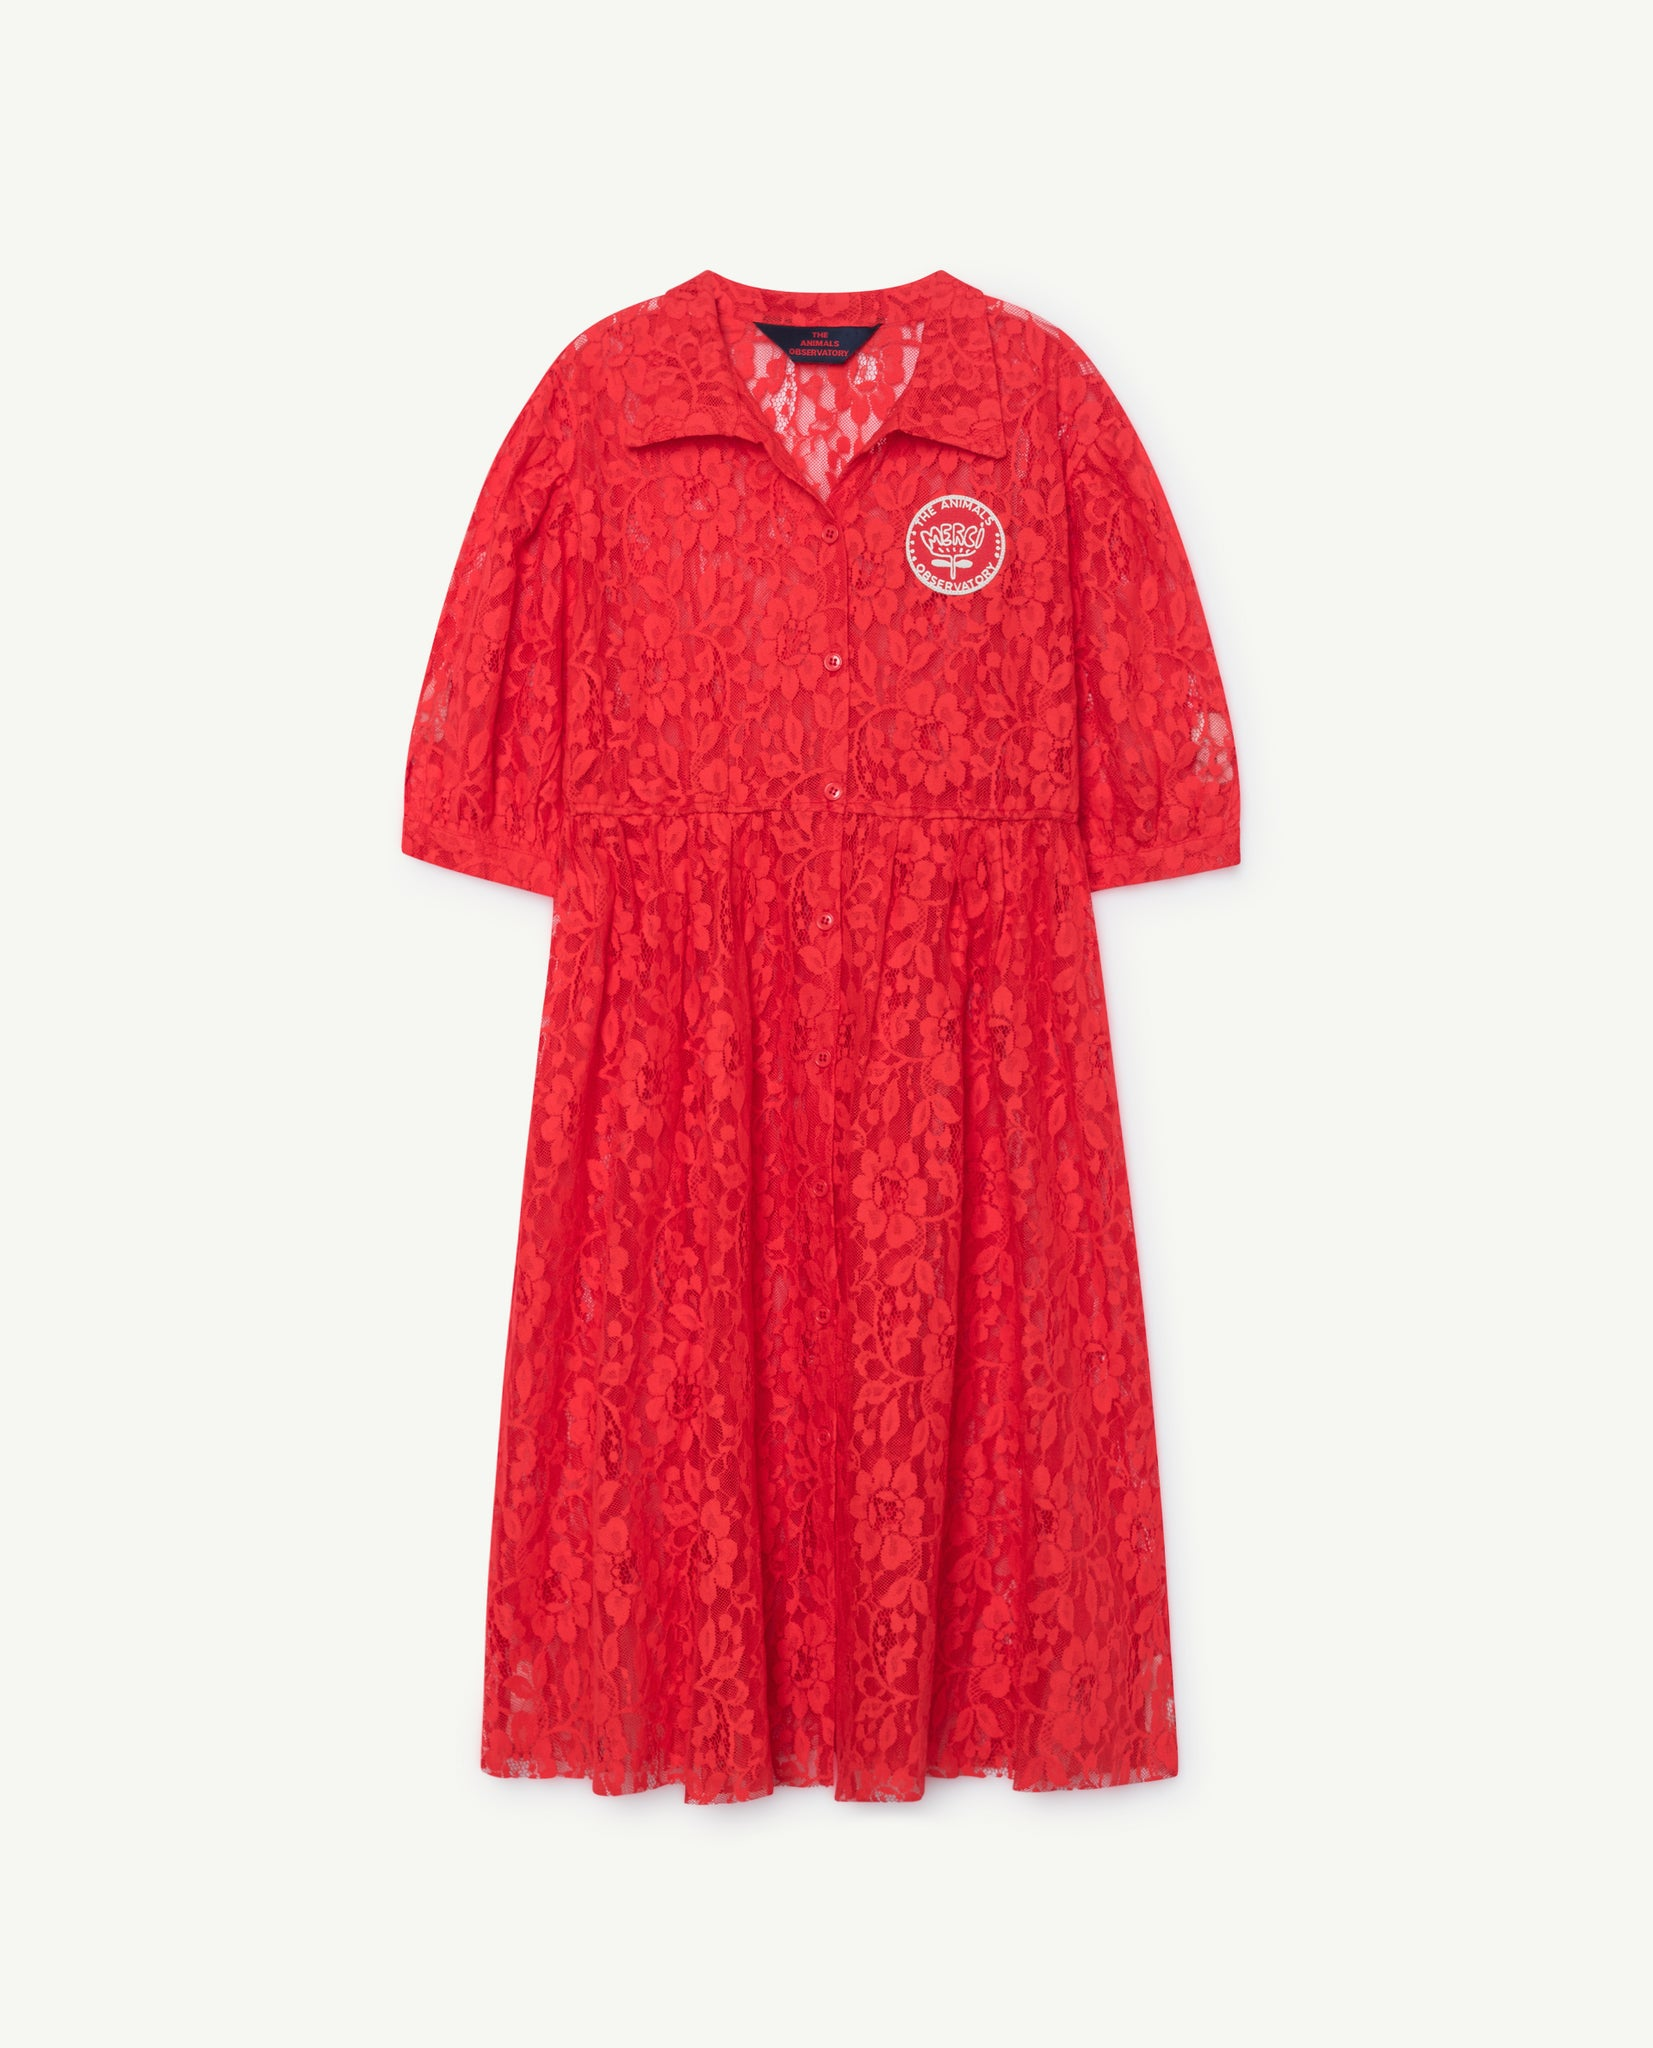 DOLPHIN KIDS DRESS // RED